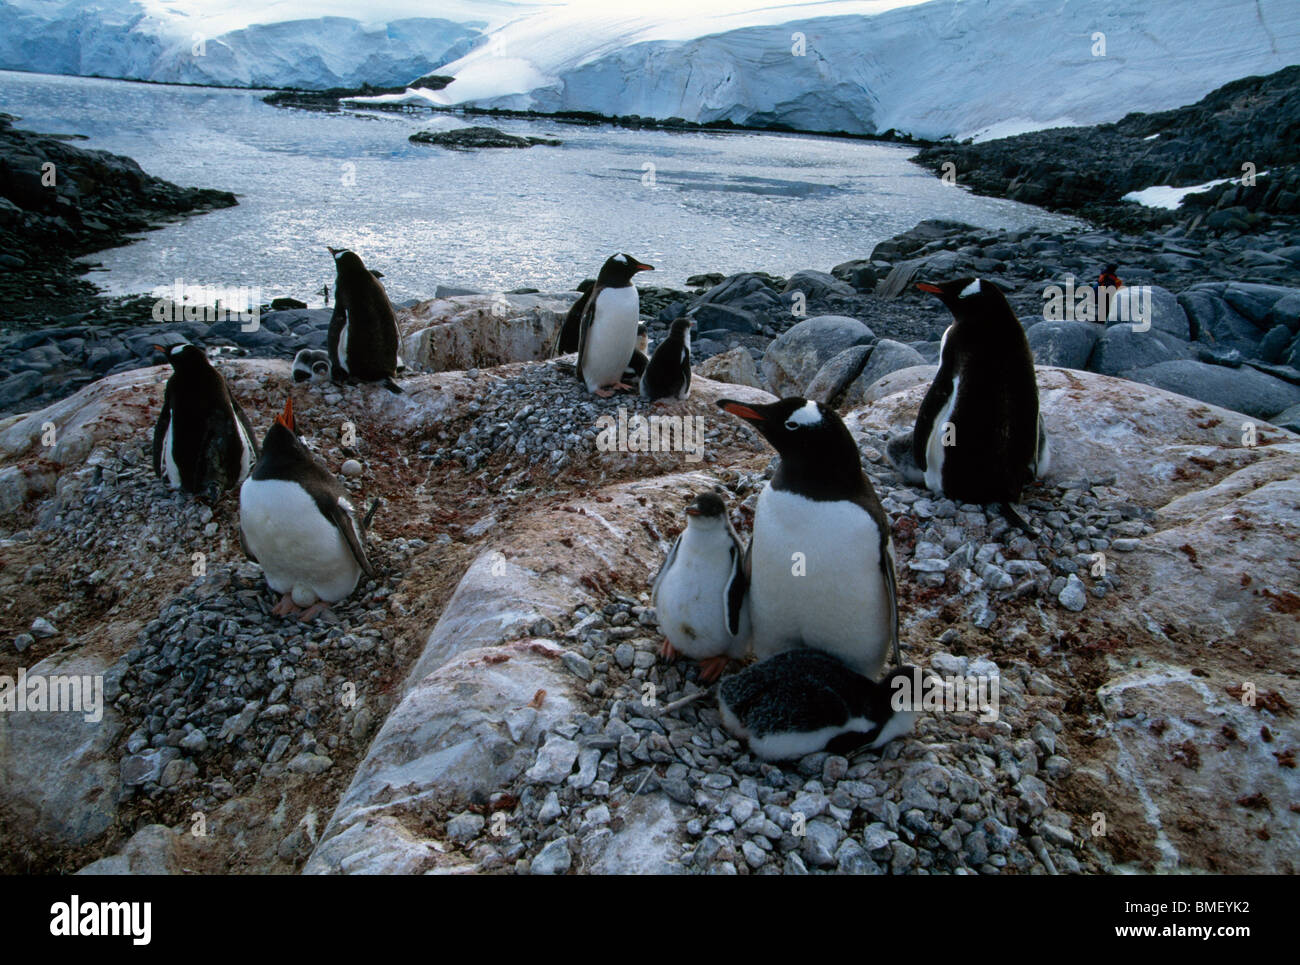 gentoo penguins with chicks wiencke island antarctica stock photo royalty free image. Black Bedroom Furniture Sets. Home Design Ideas